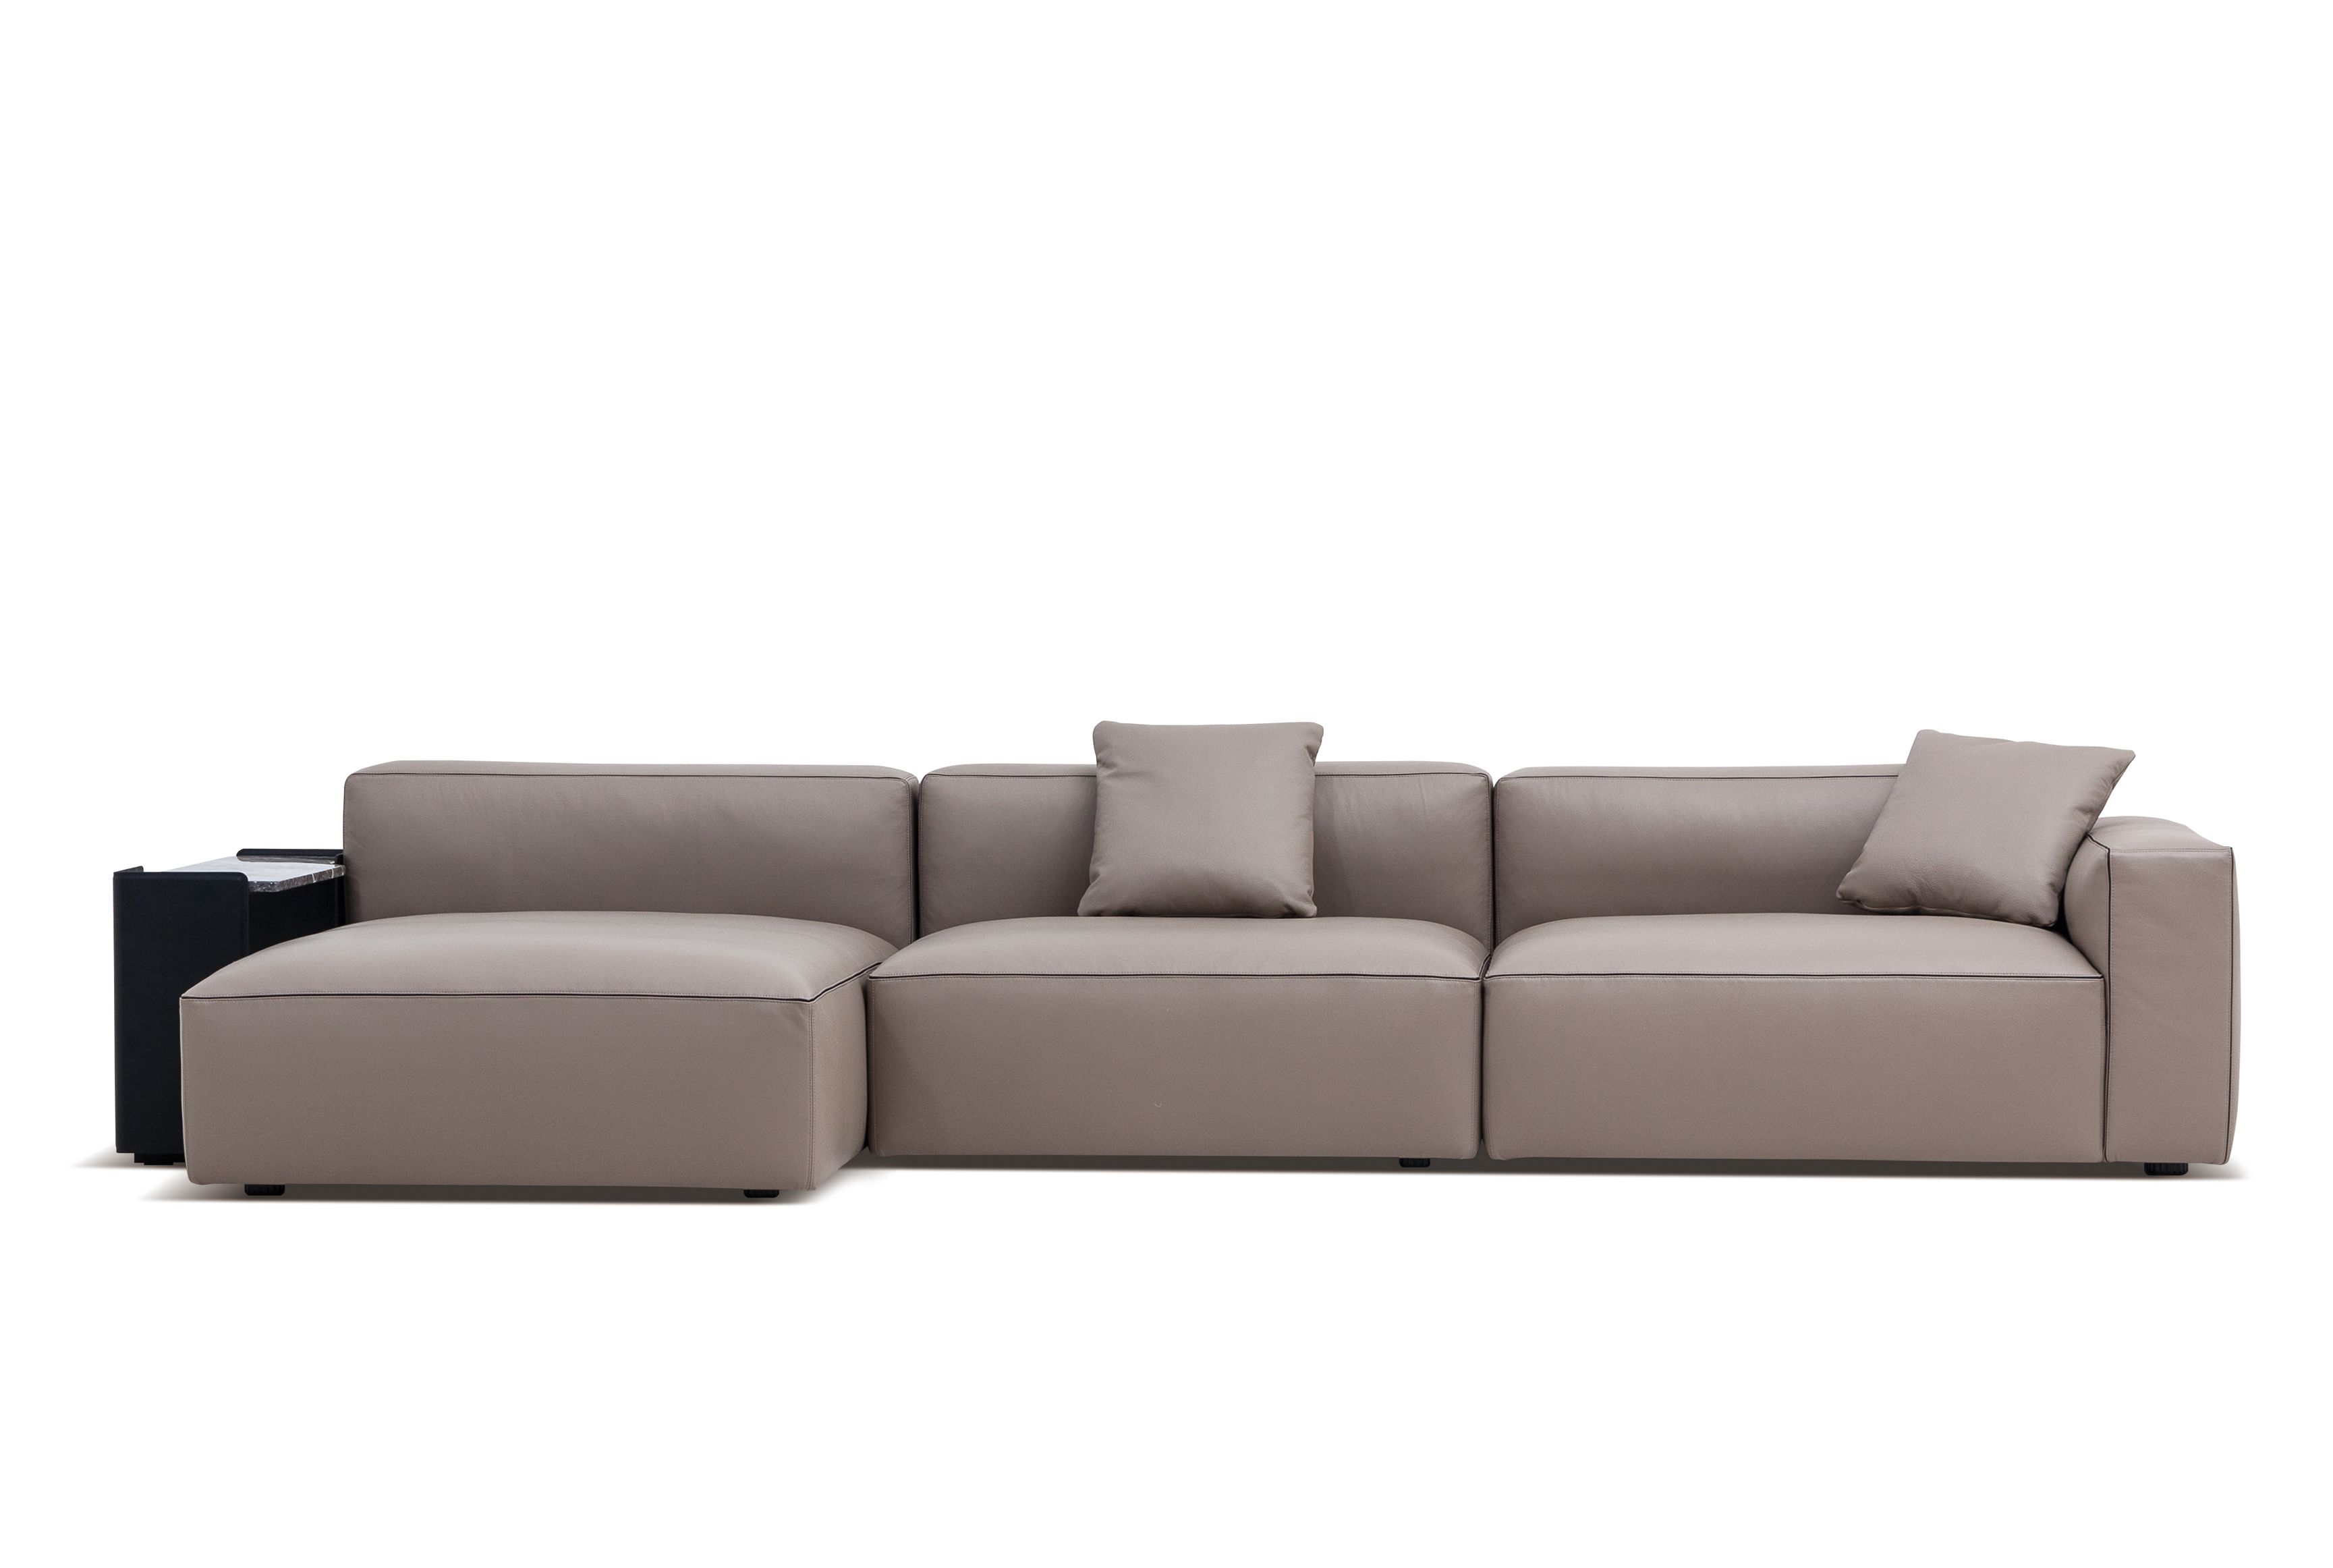 camerich sofa review apartment size sectional leather boxy modular home co